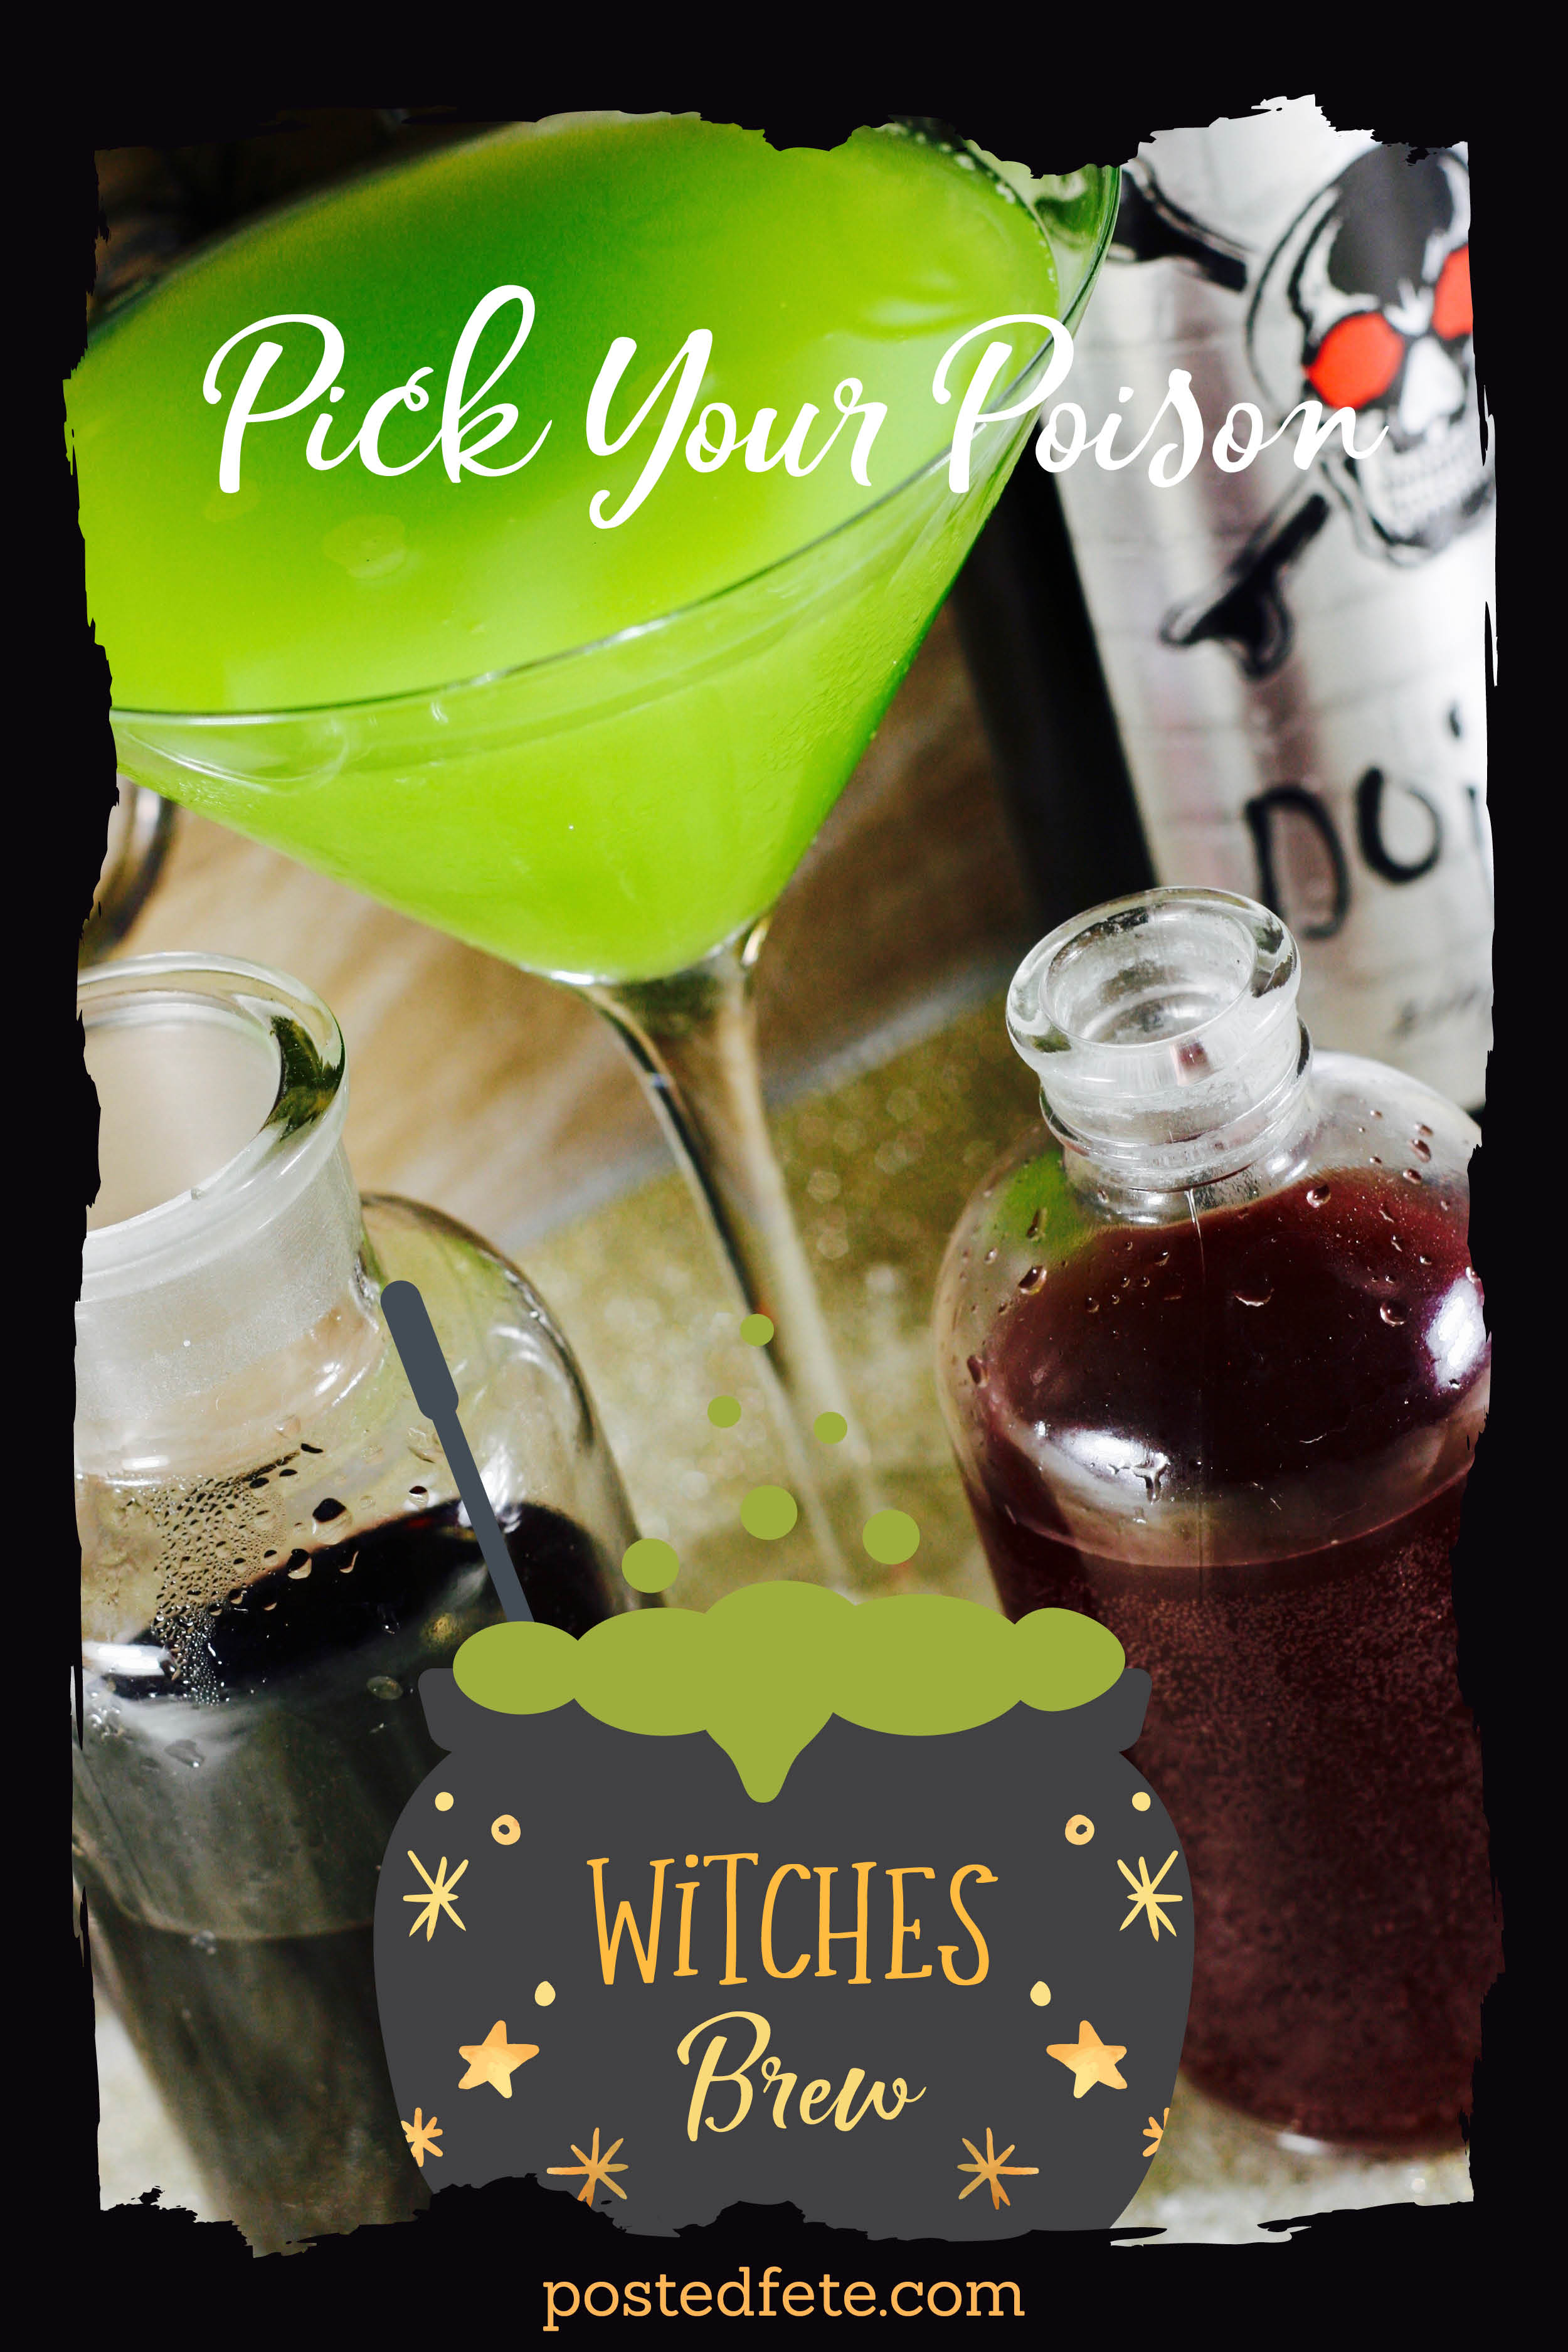 Pick Your Poison Witches Brew Recipes Posted Fete